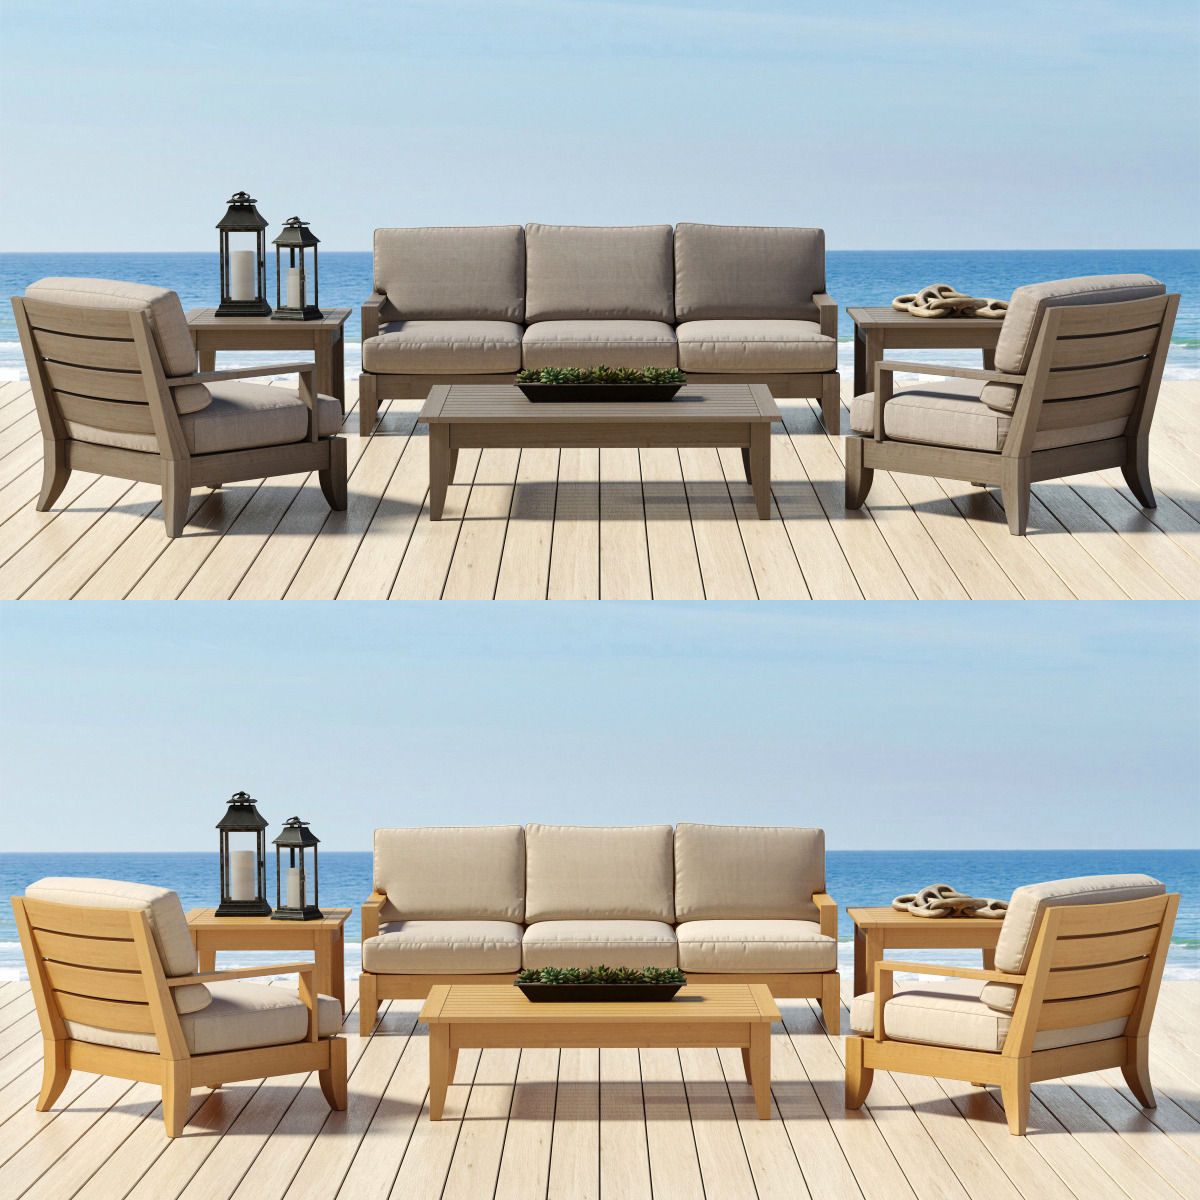 Restoration hardware outdoor furniture restoration for Outdoor furniture 3d max